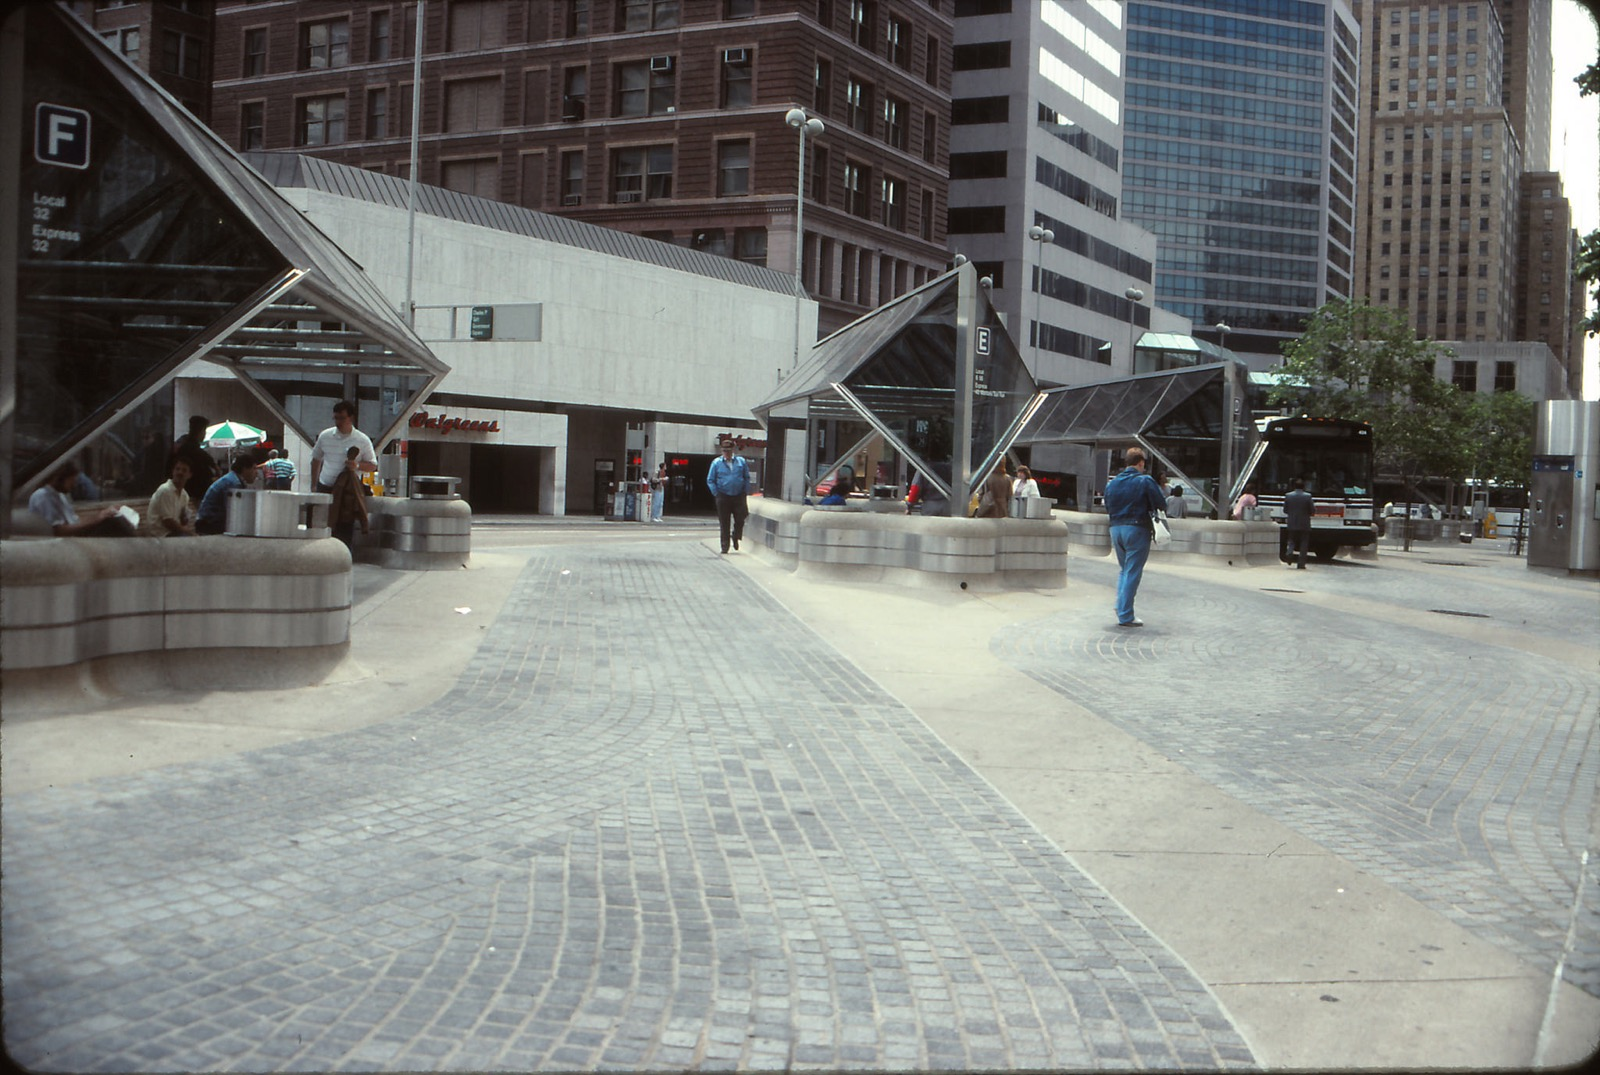 5th Street Transit Center, Downtown / Image courtesy of Flickr user mplstodd // Published: 3.12.18